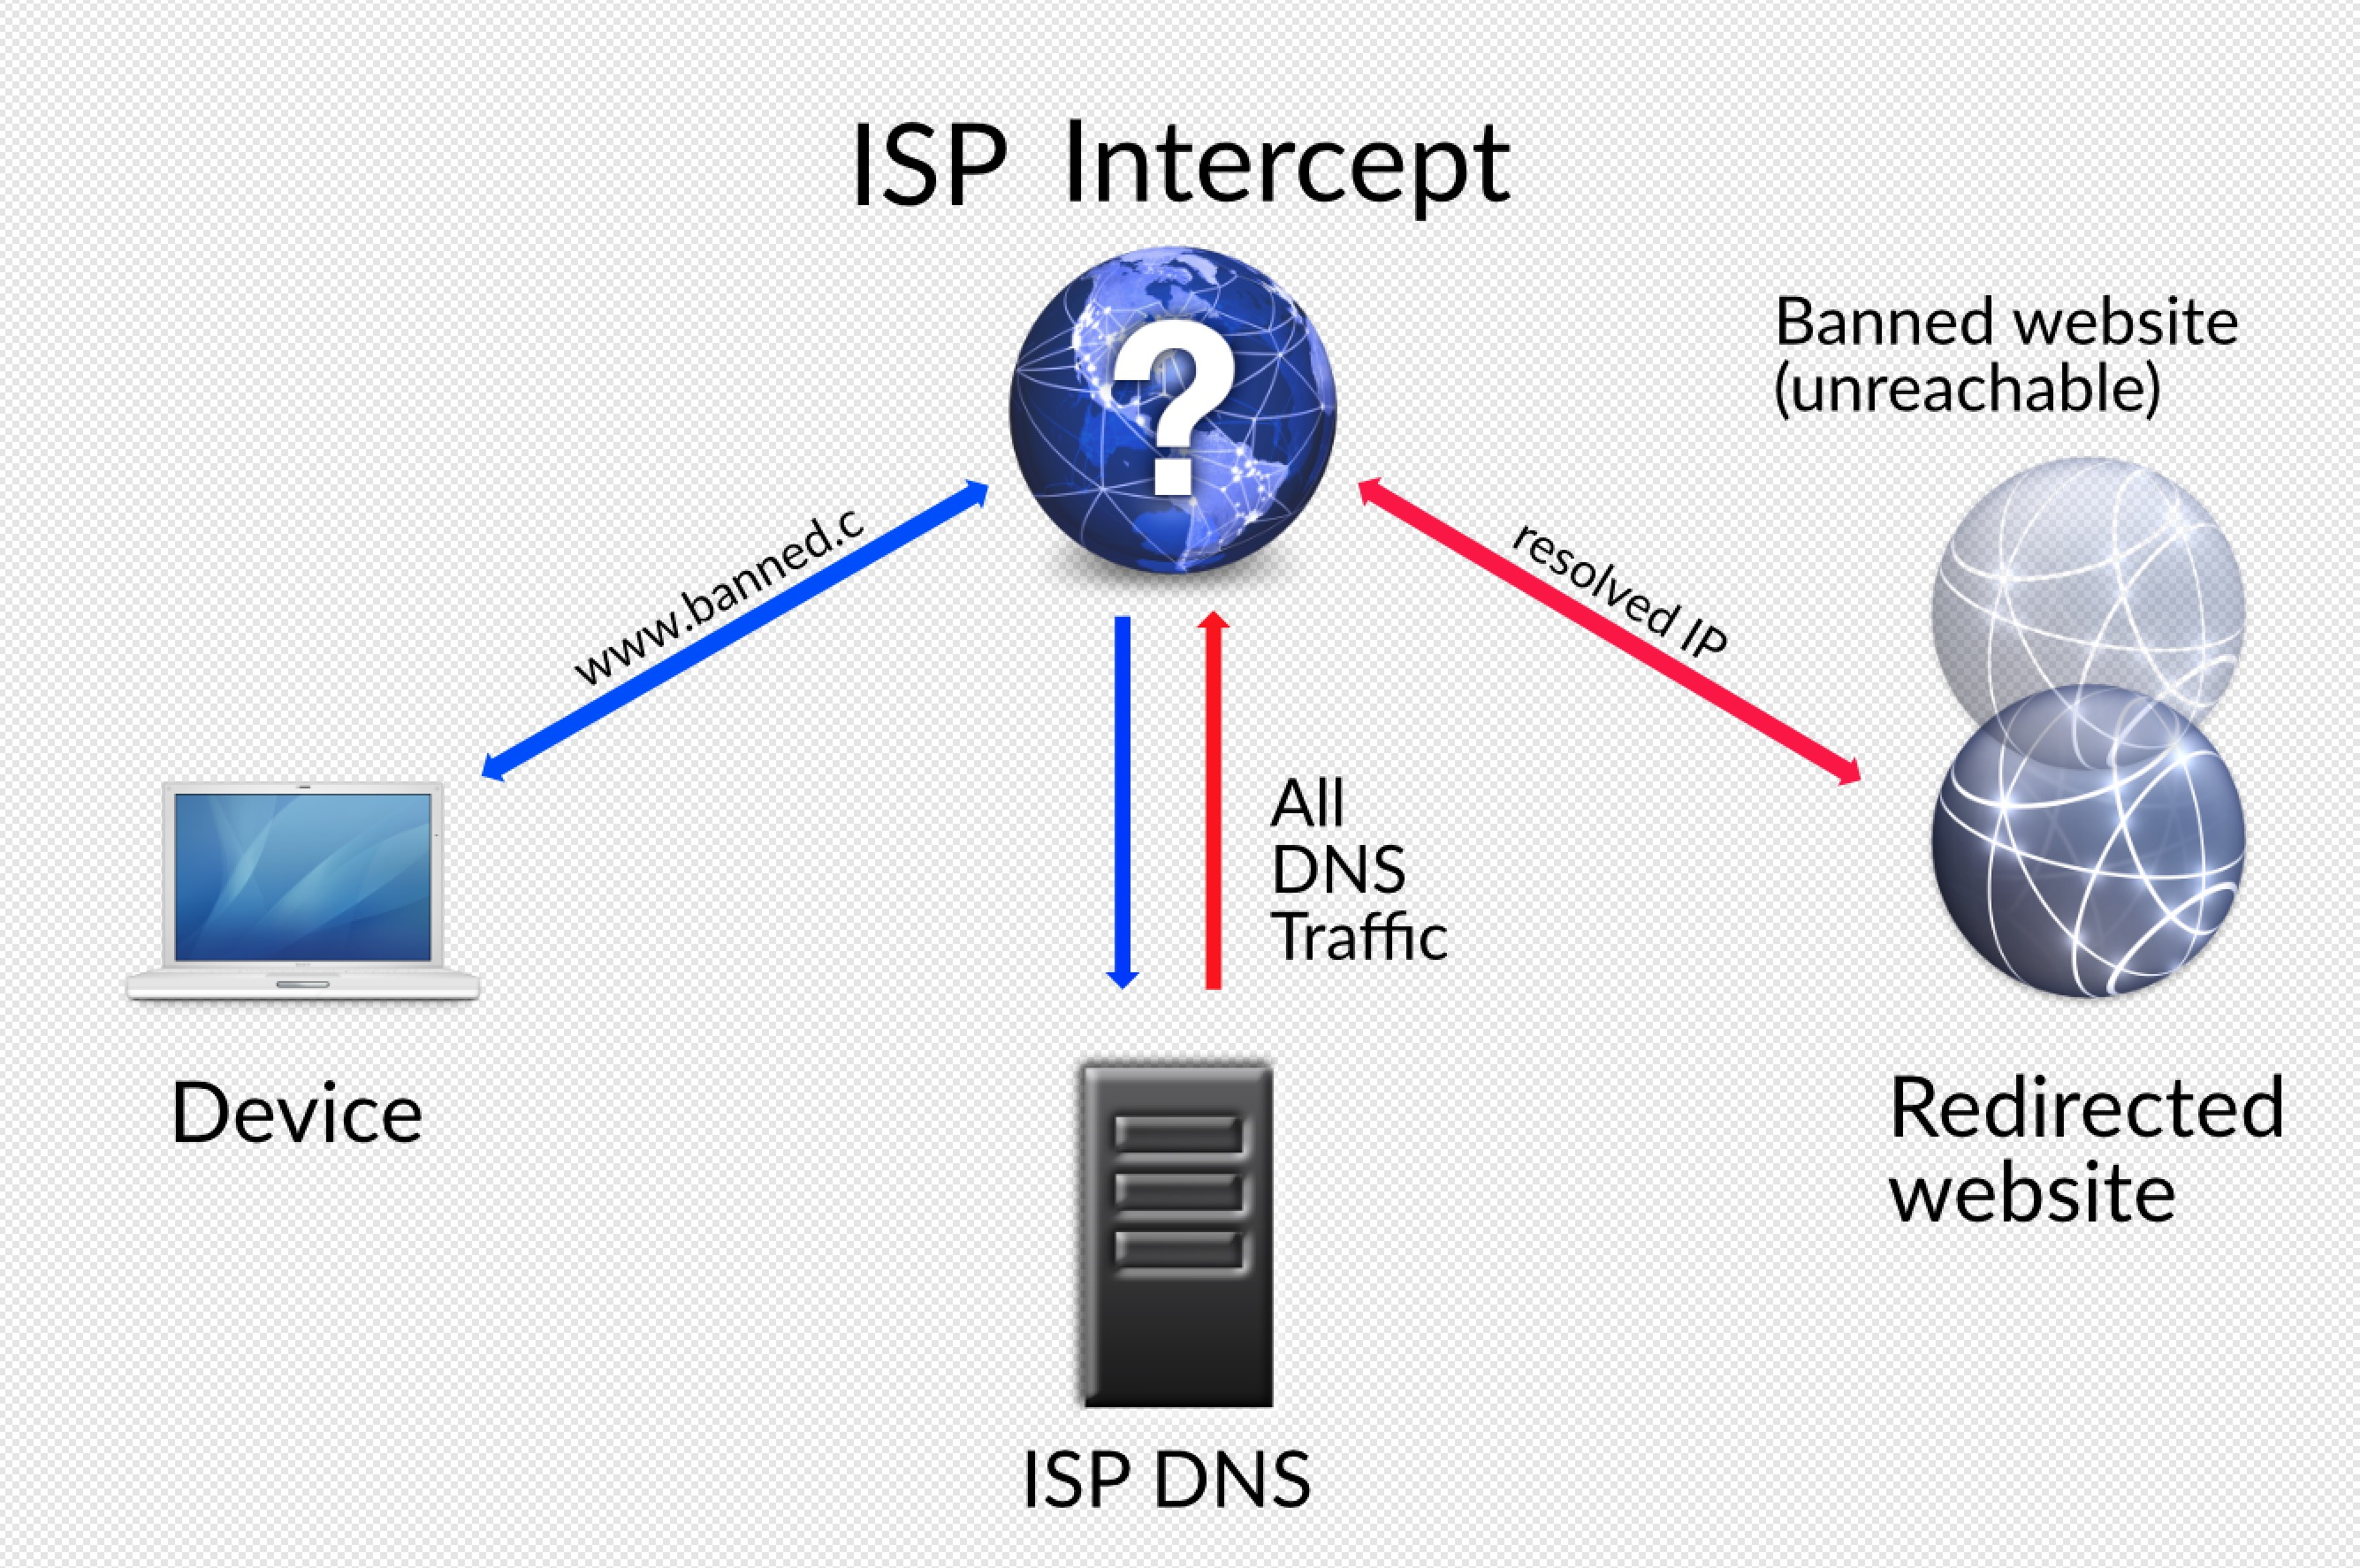 image of man-in-the-middle attack ISP